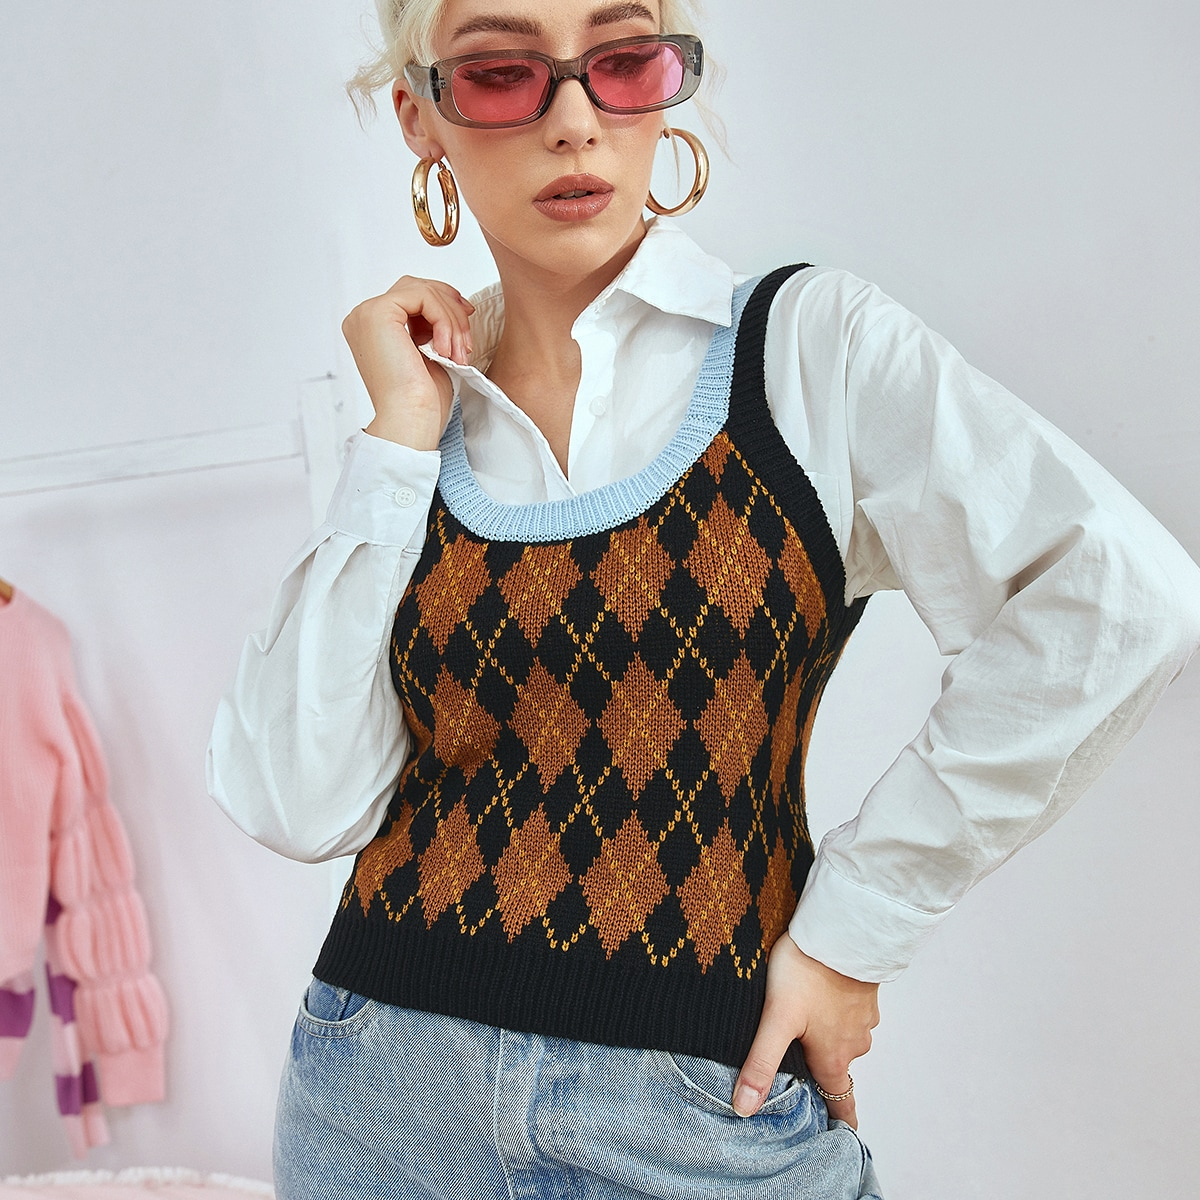 Argyle Pattern Knit Top Without Blouse, SHEIN  - buy with discount